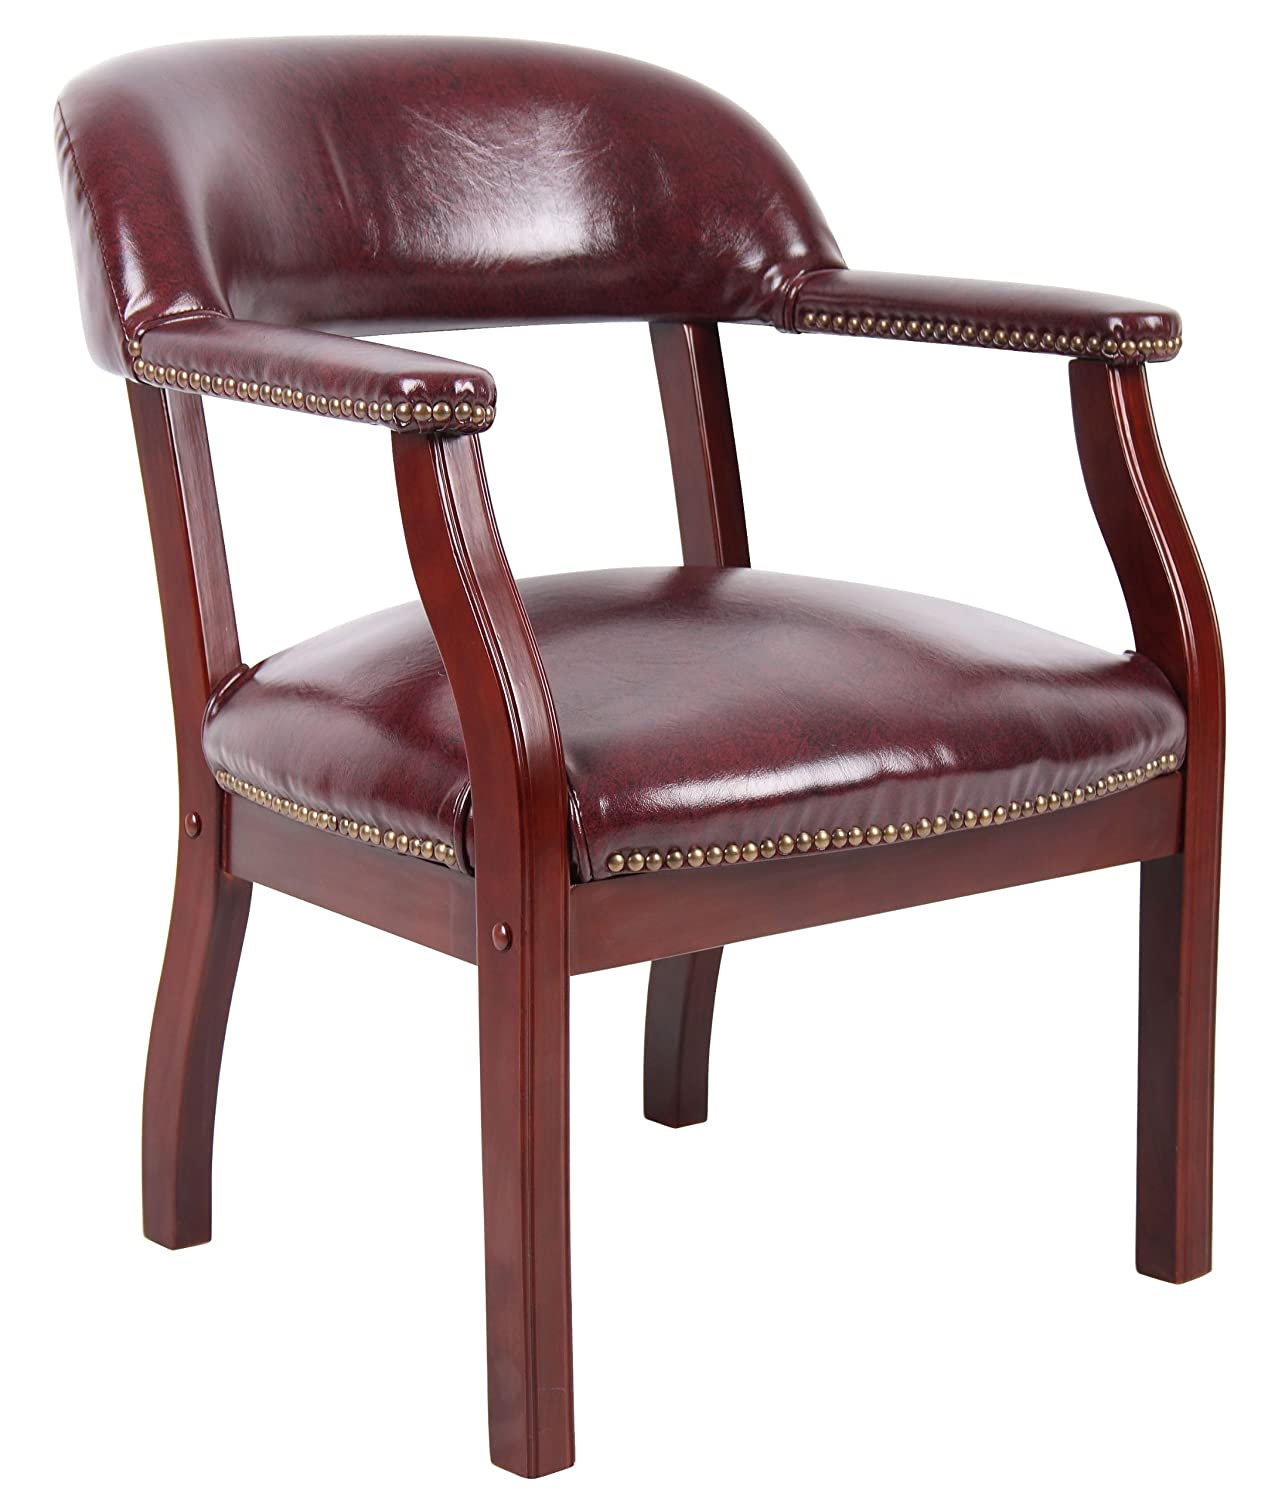 Armchairs For Heavy People Big Men Rated For Big And